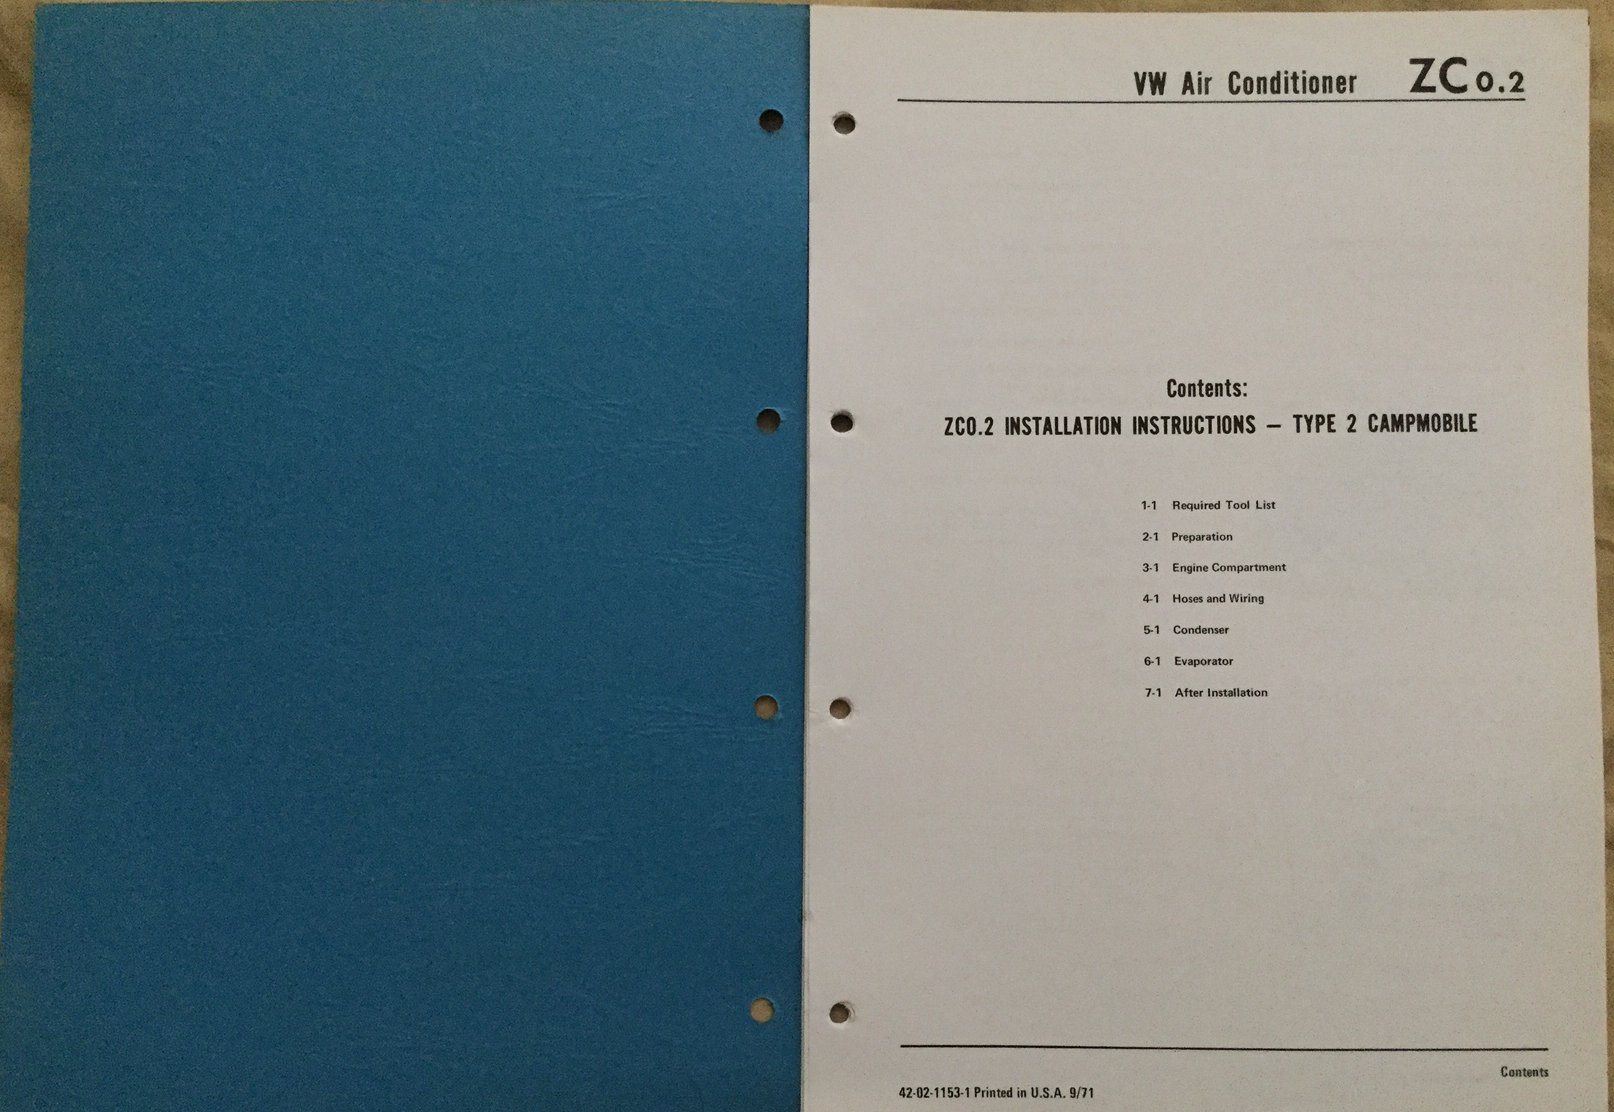 1972 Vw Campmobile Air Conditioner Installation Wiring Tools List Pdf Instructions 37 Mb Please Right Click On The Link Above And Do Save As